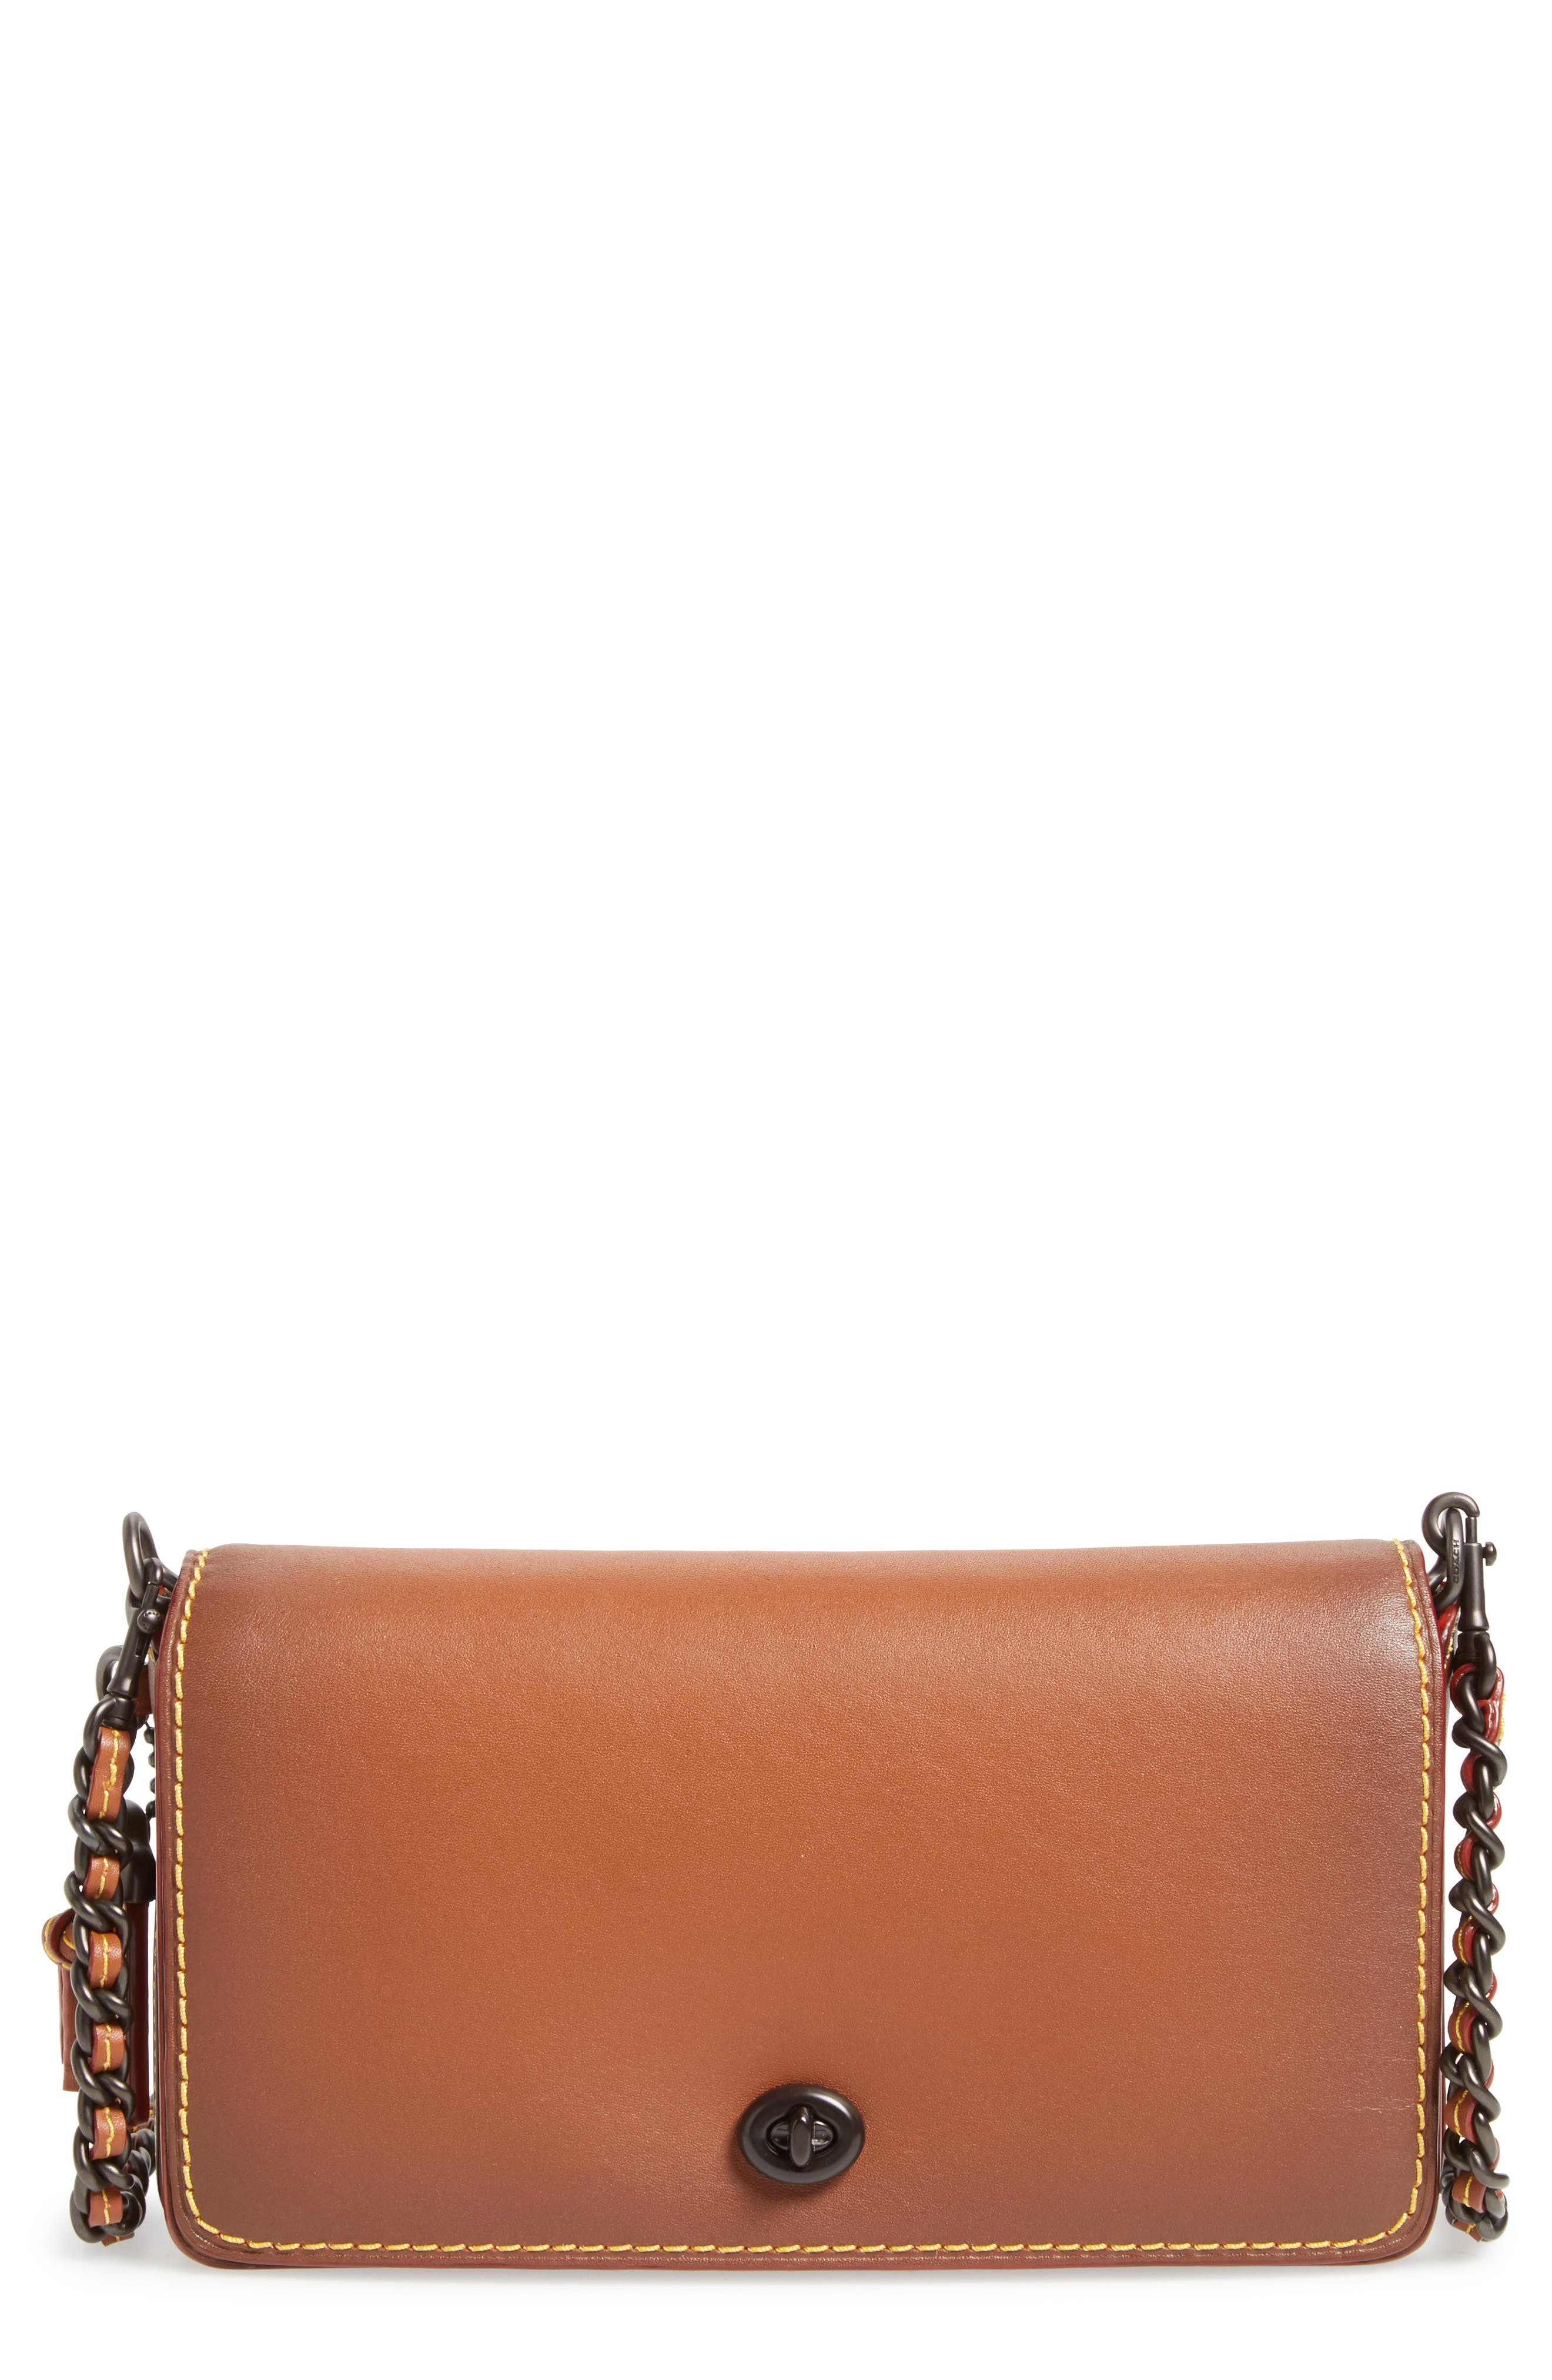 'Dinky' Leather Crossbody Bag,                             Main thumbnail 2, color,